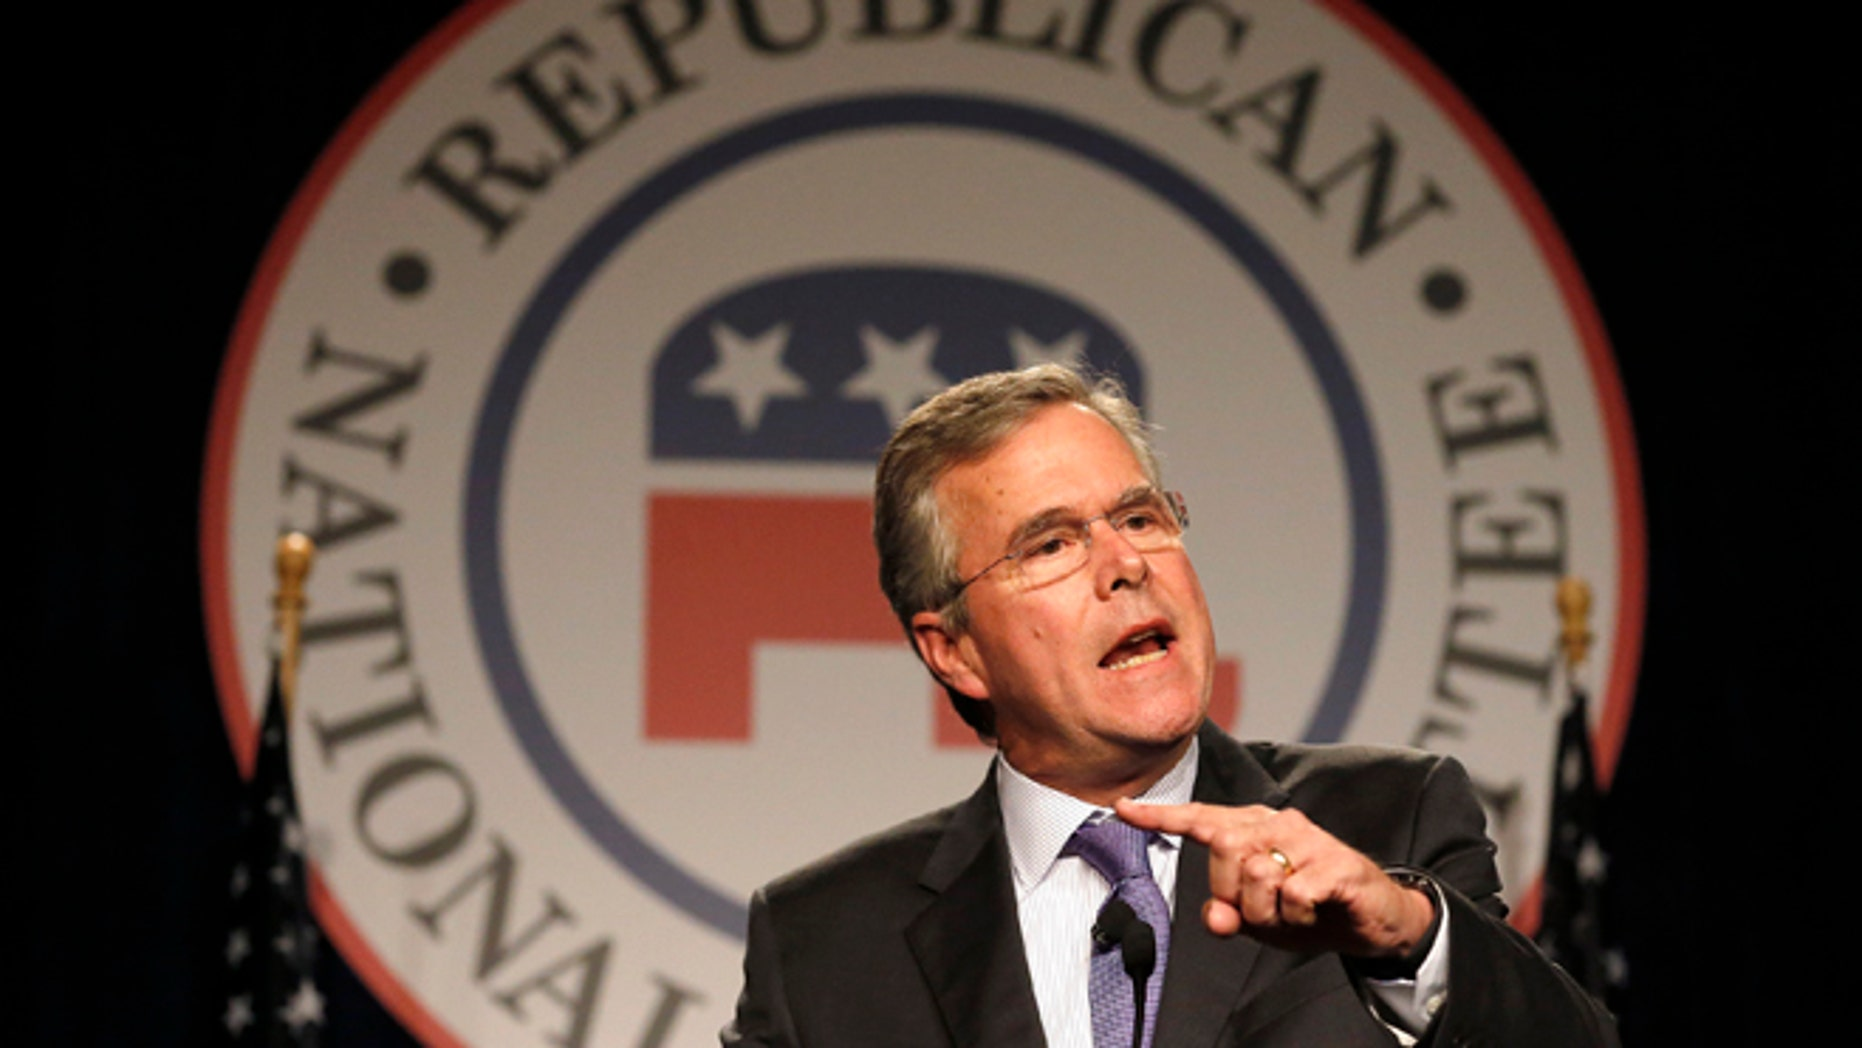 Former Florida Gov. Jeb Bush delivers the keynote address at the Republican National Committee spring meeting Thursday, May 14, 2015, in Scottsdale, Ariz.  Bush has yet to officially declare his intentions on whether he will join the growing number of Republican candidates for the presidential election of 2016. (AP Photo/Ross D. Franklin)